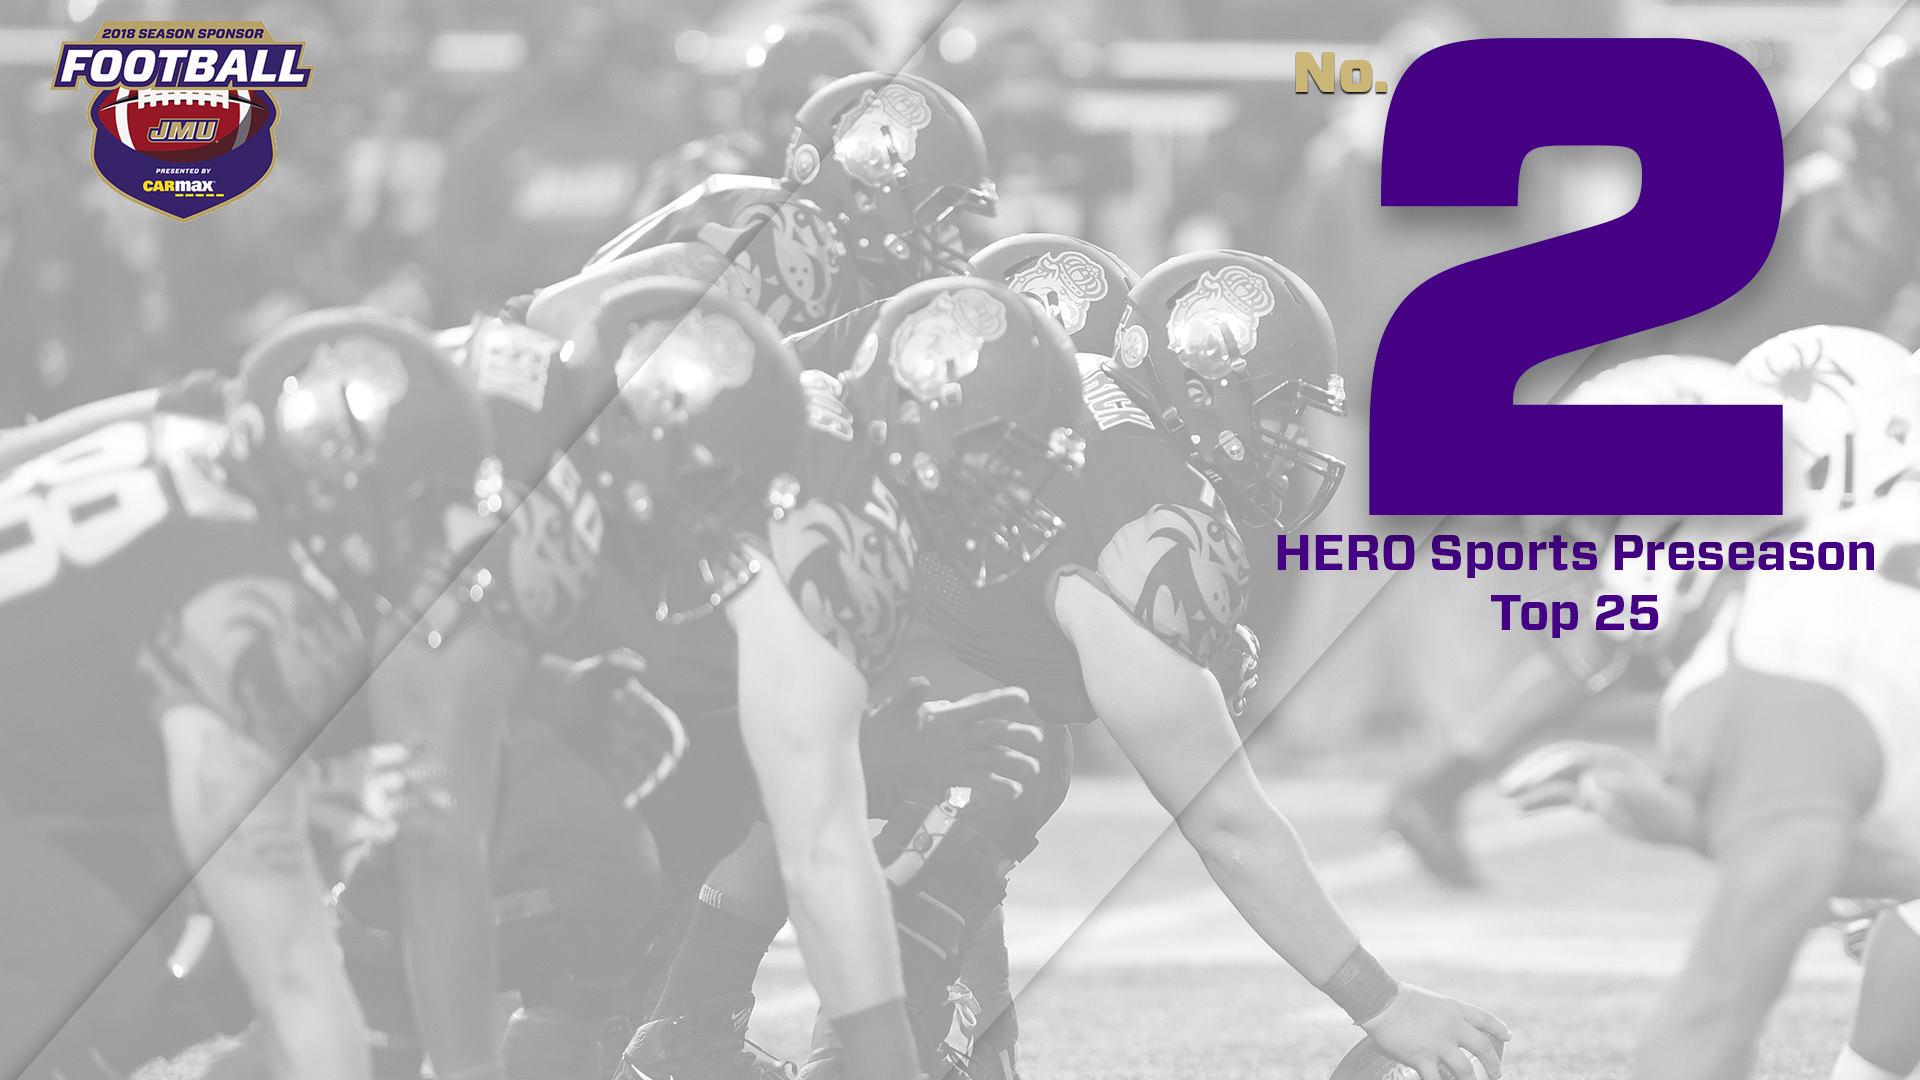 Football: Dukes Rank Second in HERO Sports Poll, Five Earn Preseason All-America Status